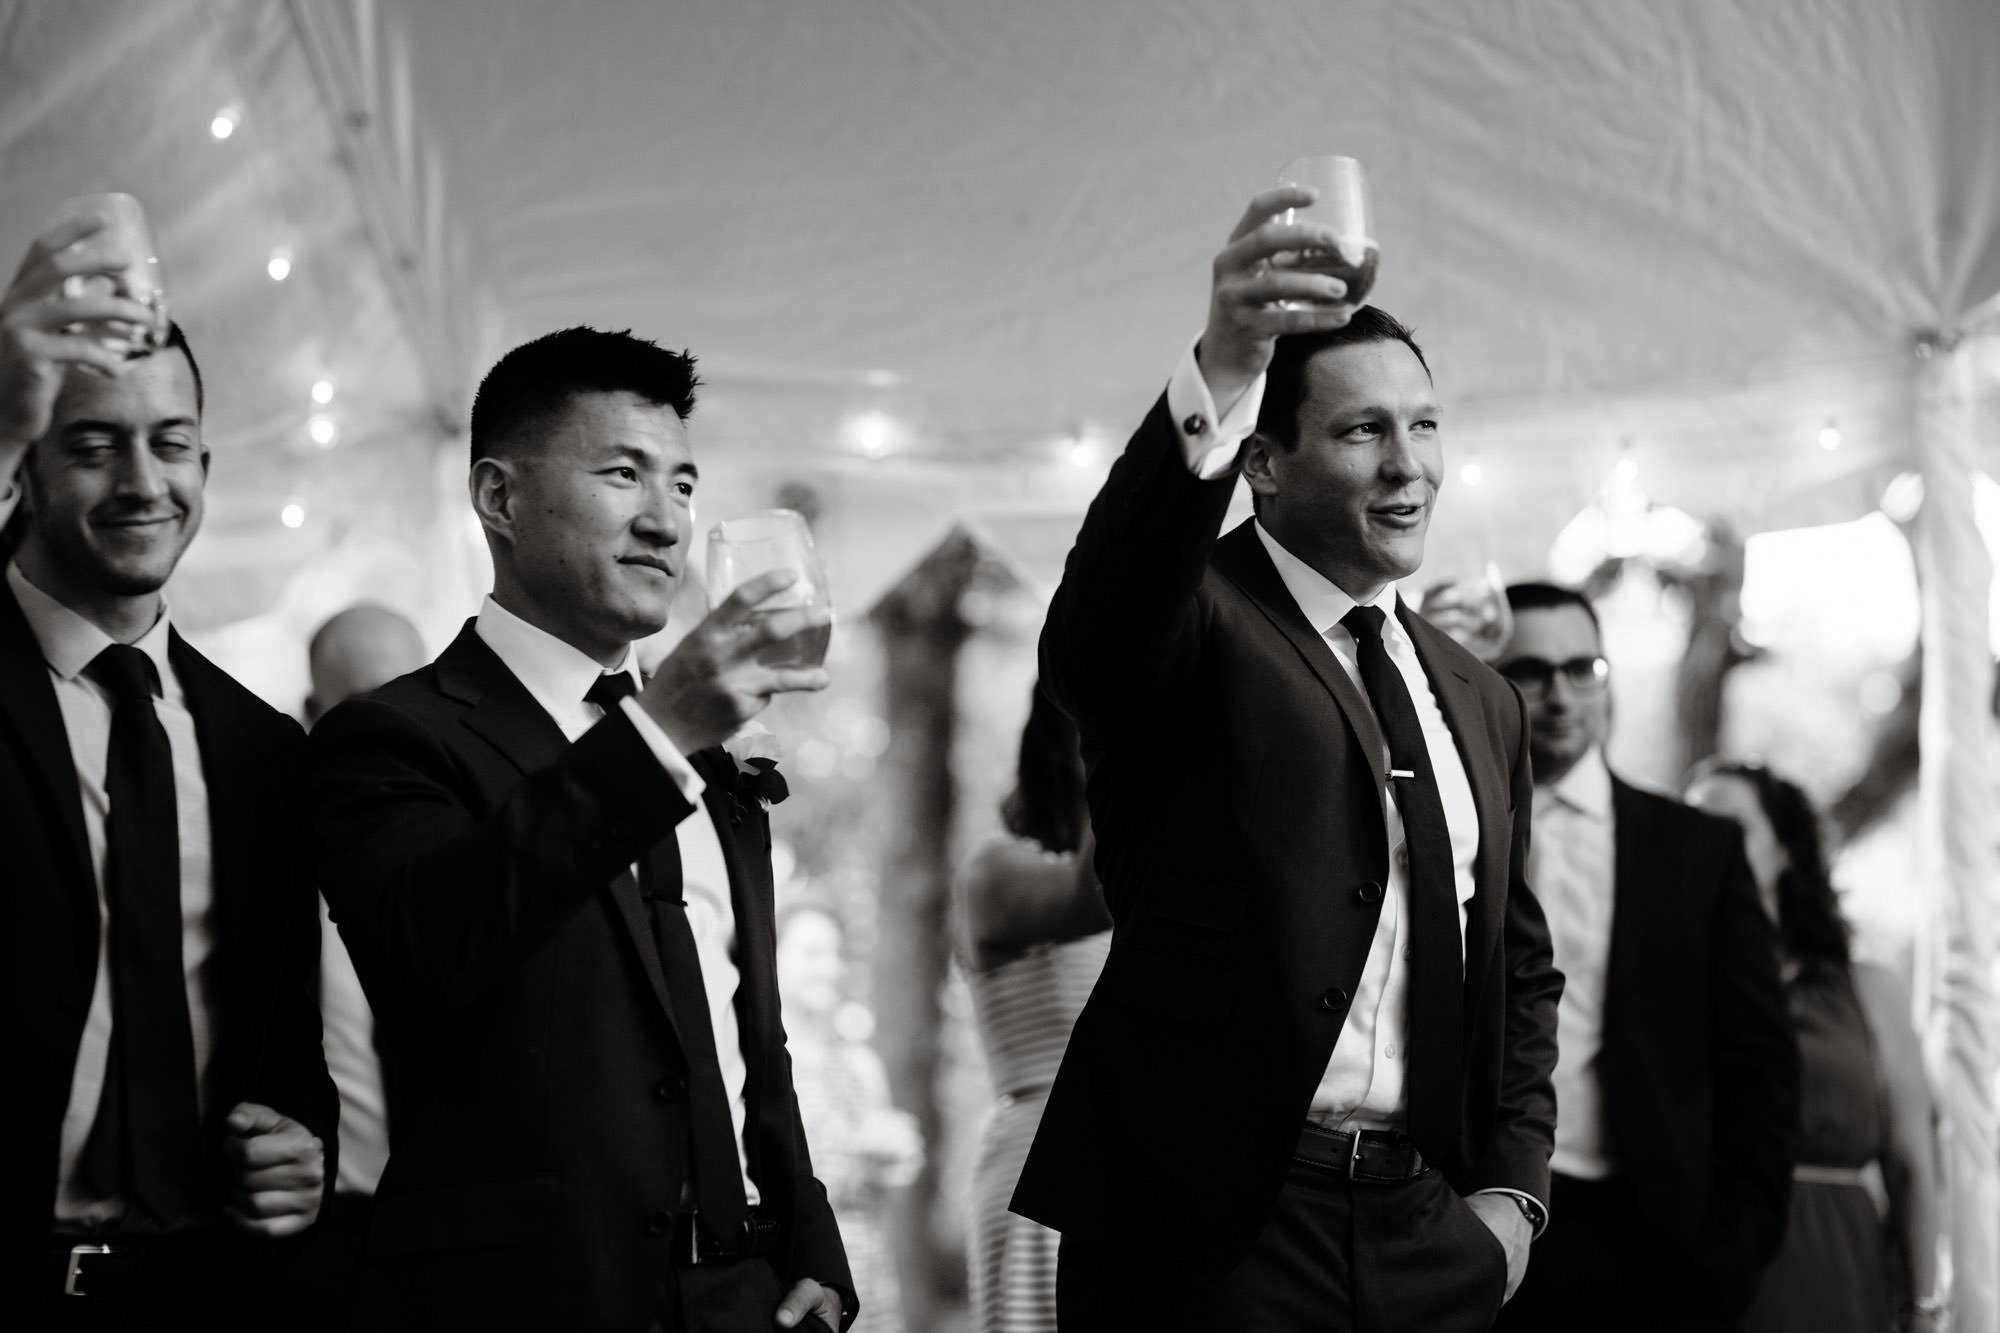 Groomsmen raise their glasses during a toast.